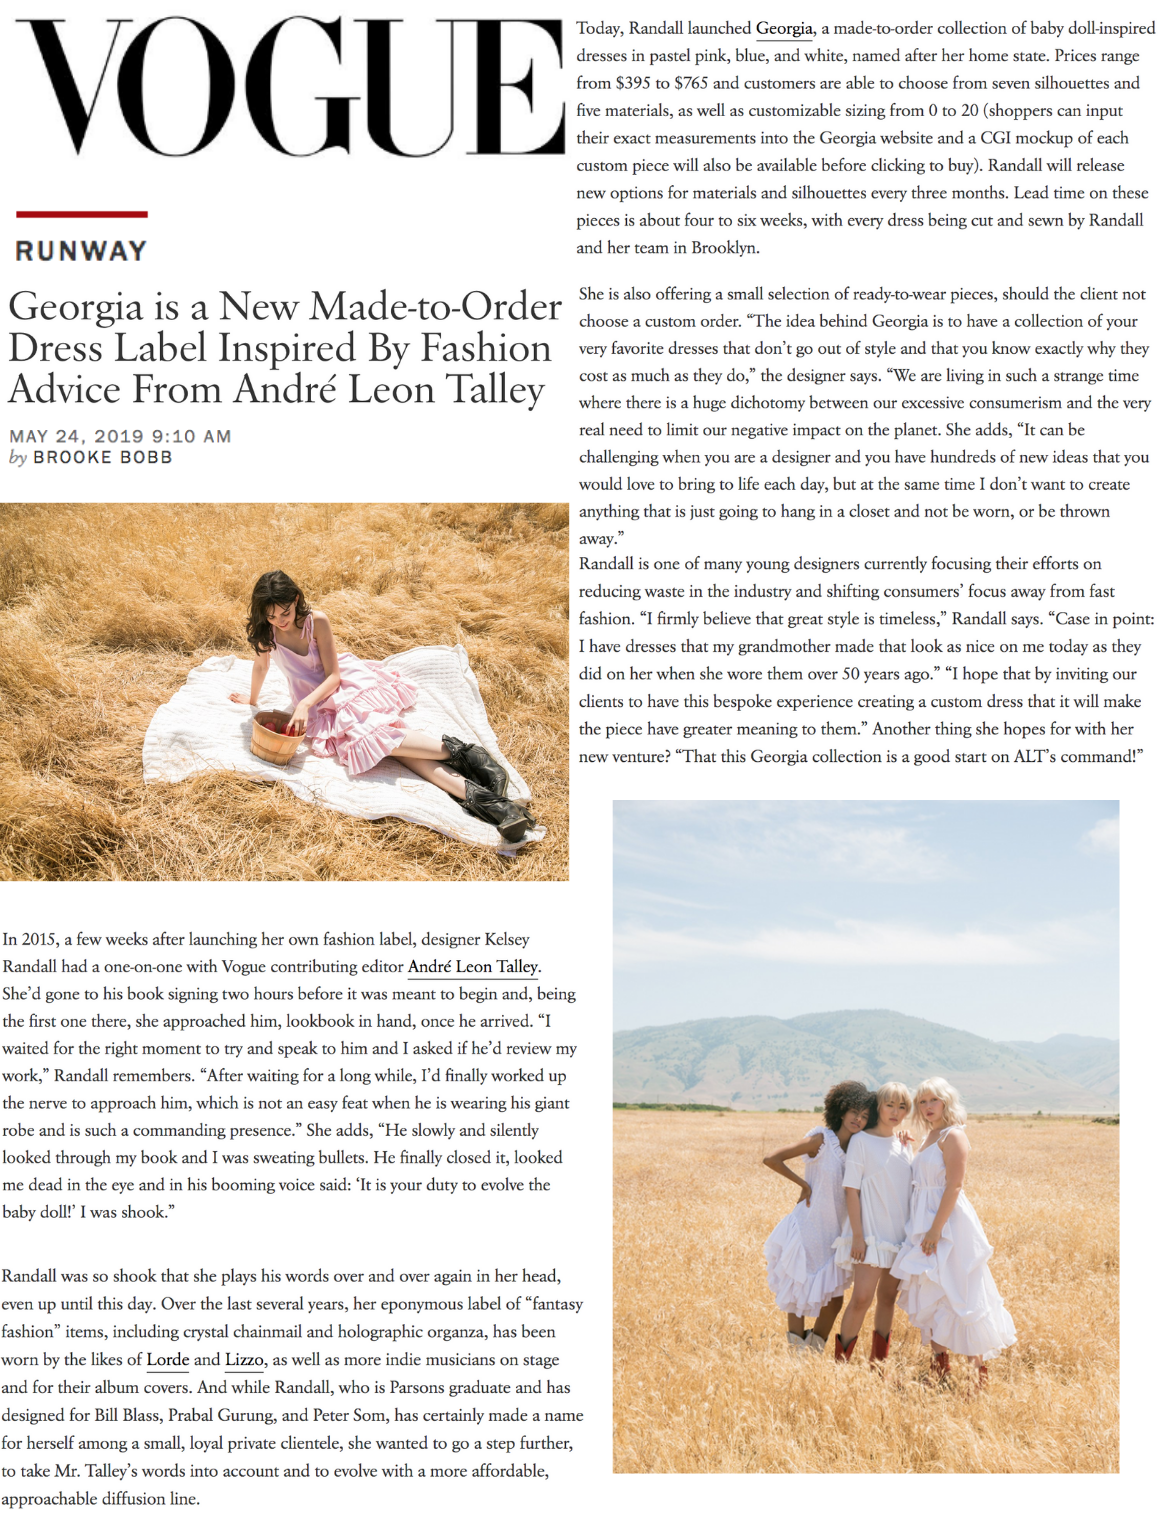 vogue magazine feature on georgia by kelsey randall brand launch bespoke made-to-order custom dresses made in nyc made in america size inclusive